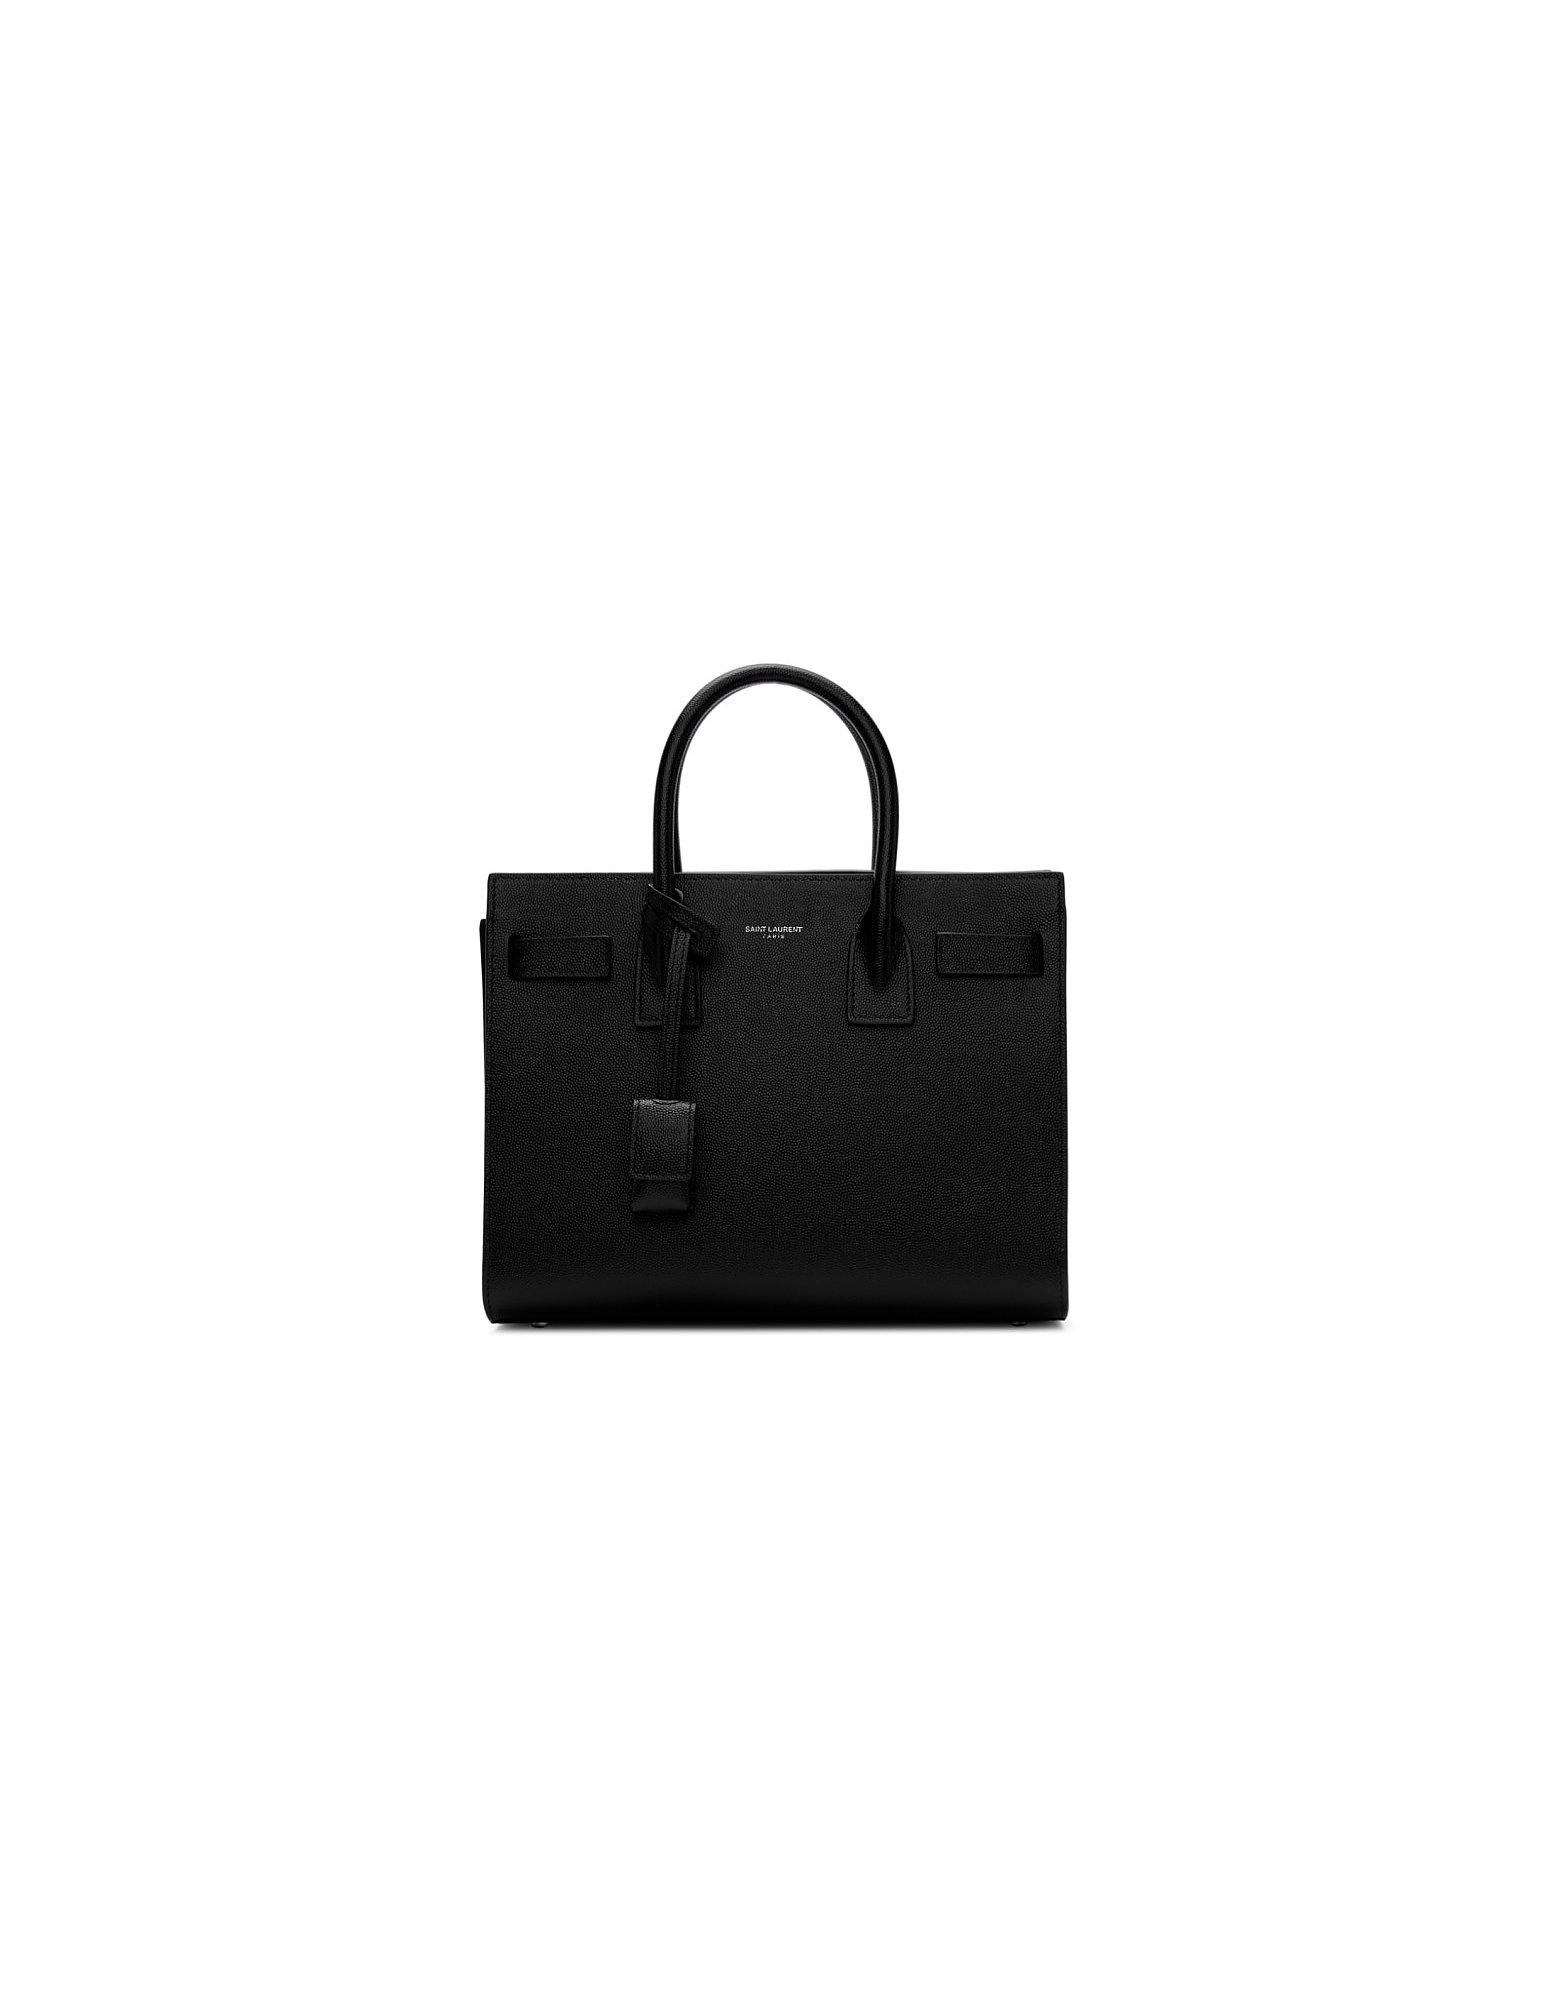 Saint Laurent Designer Handbags, Black Baby Sac De Jour Tote